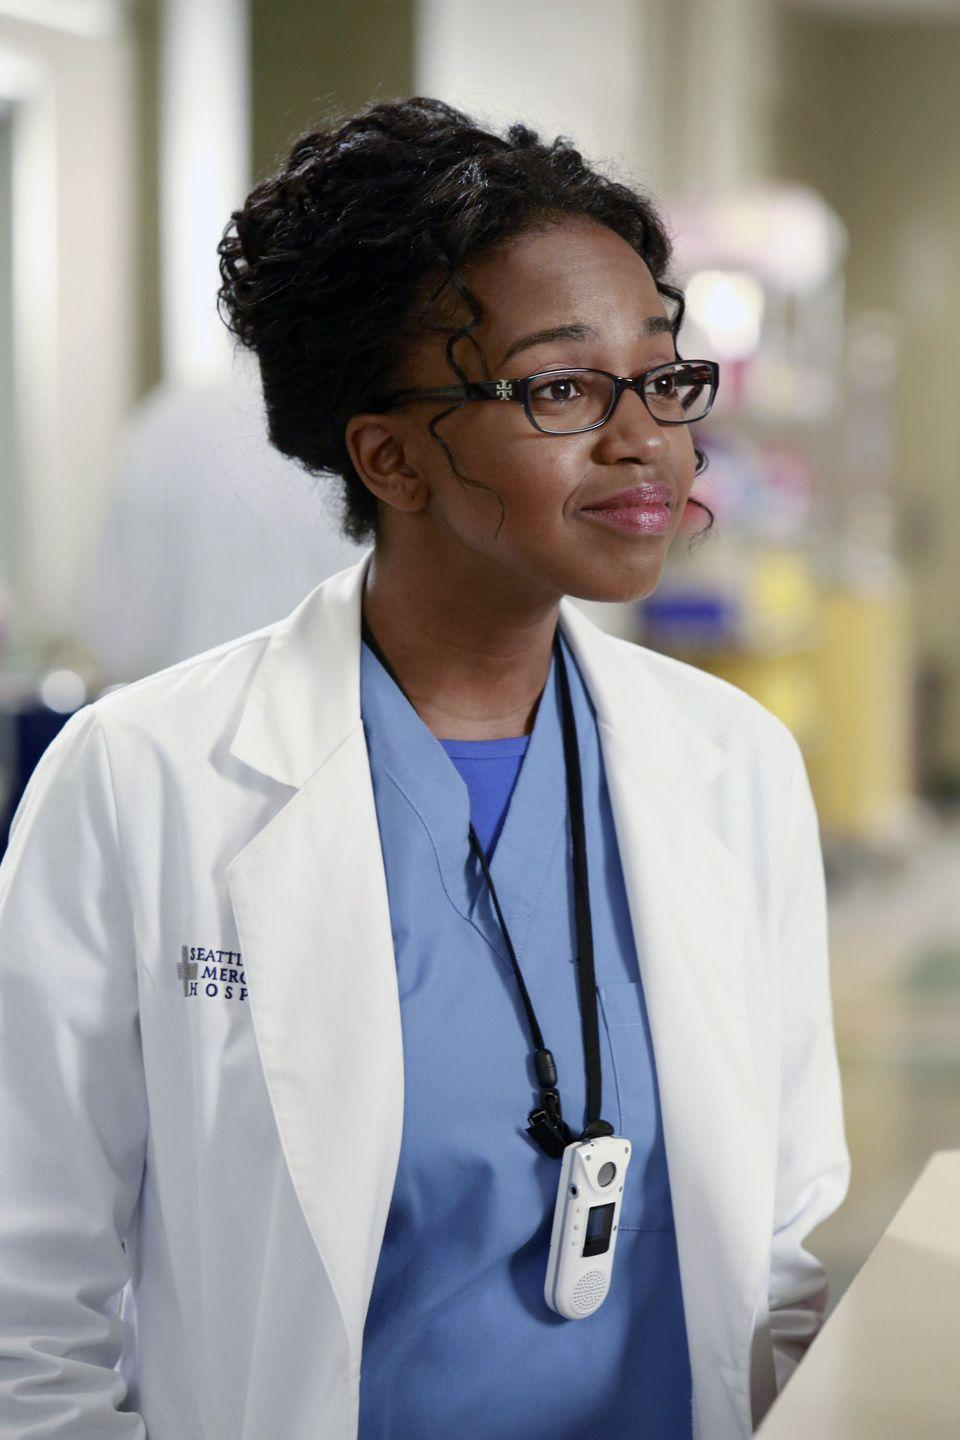 <p>Jerrika Hinton joined <em>Grey's</em> in season 9 as Stephanie Edwards, a member of the hospital's first new group of interns after the devastating plane crash in season 8. </p>